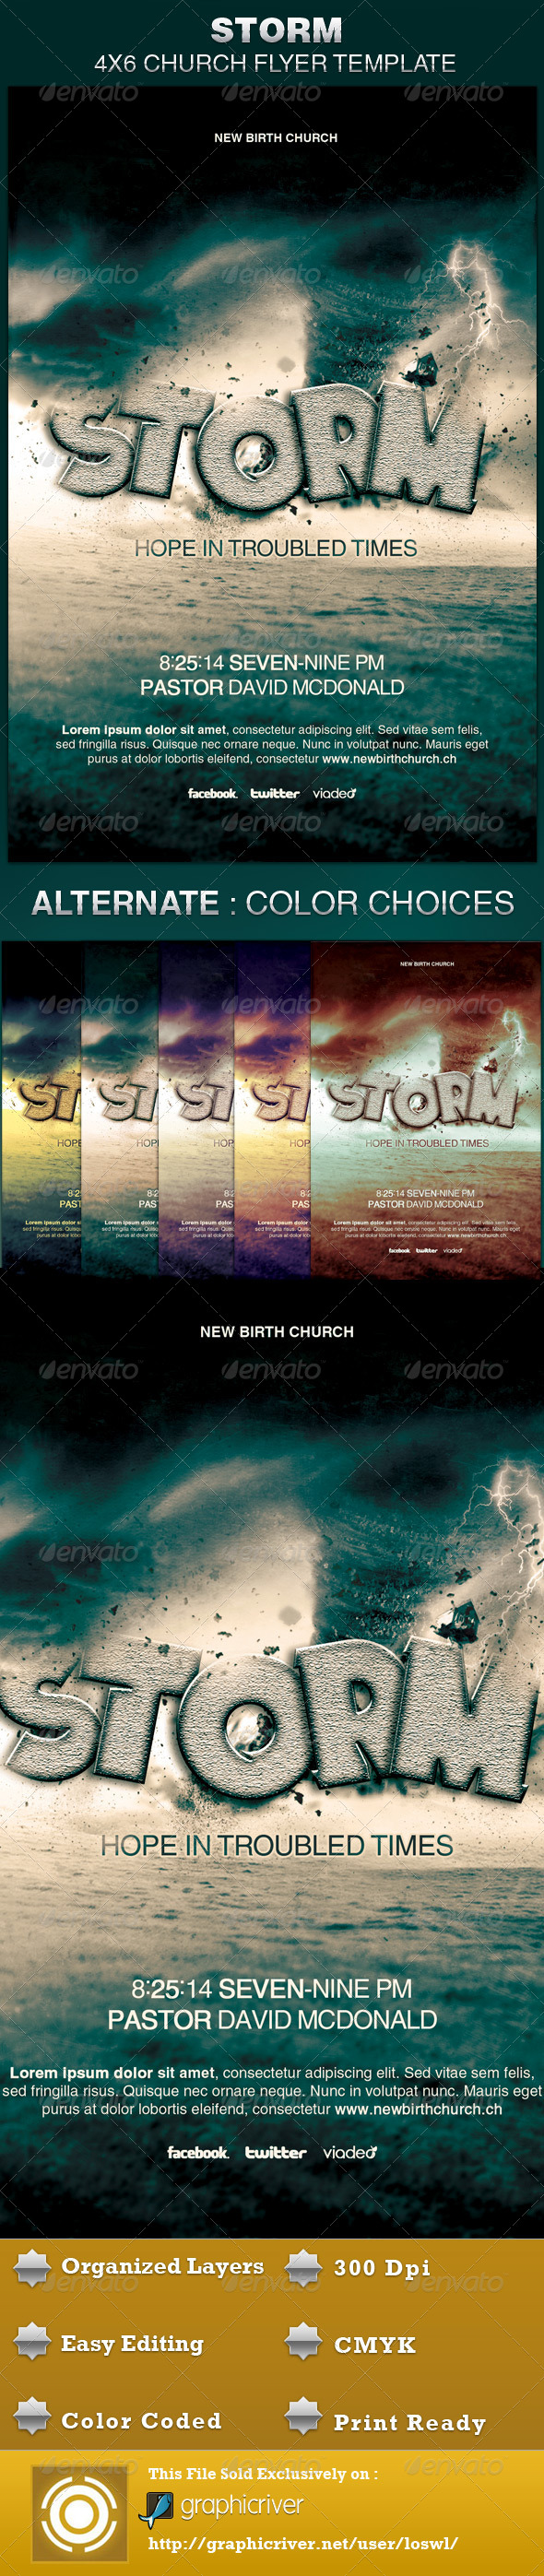 GraphicRiver Storm Church Flyer Template 4993331